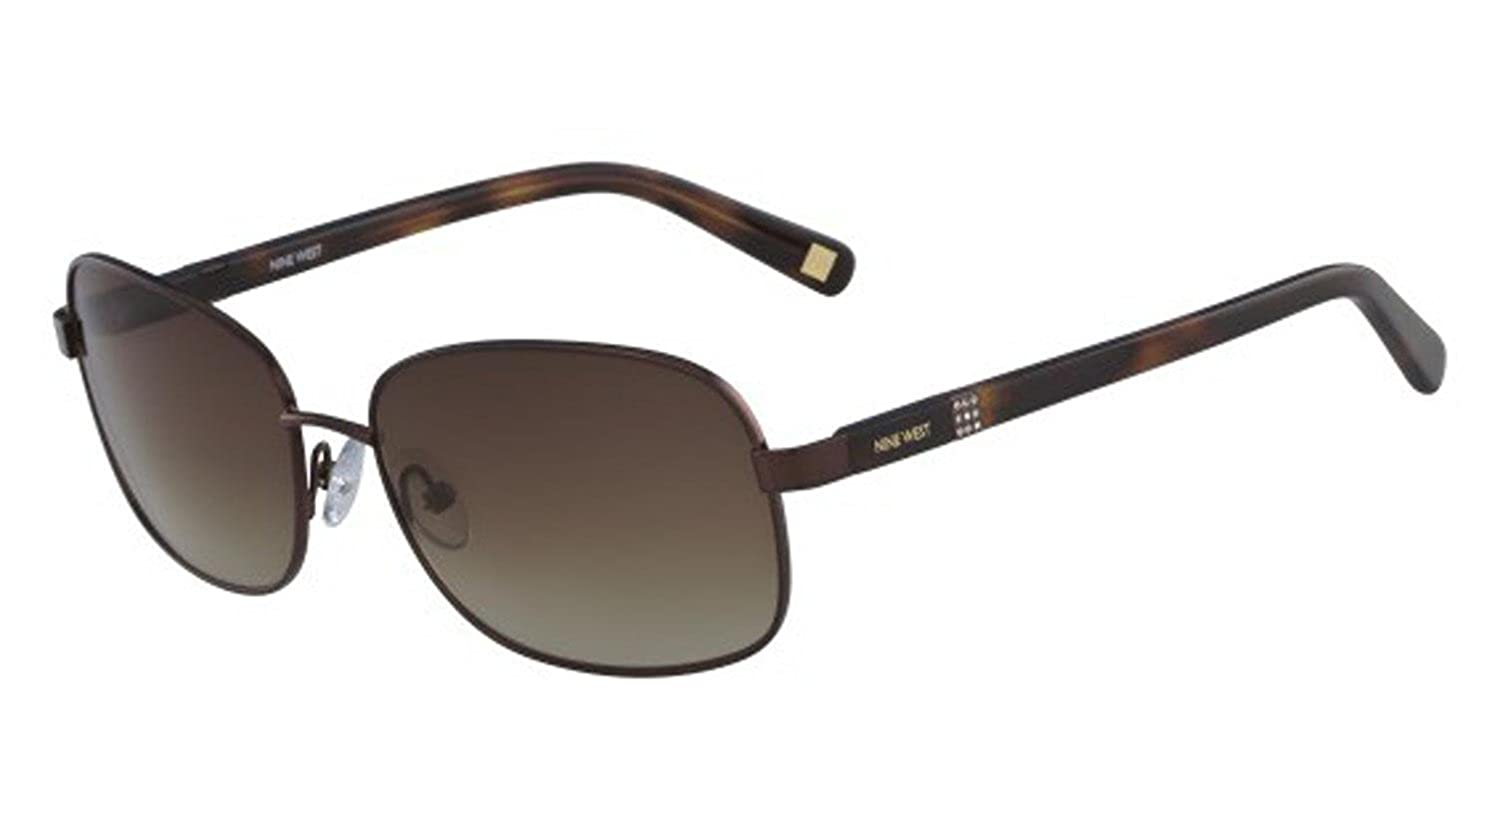 Sunglasses NINE WEST NW 123 S 210 SHINY BROWN at Amazon ...